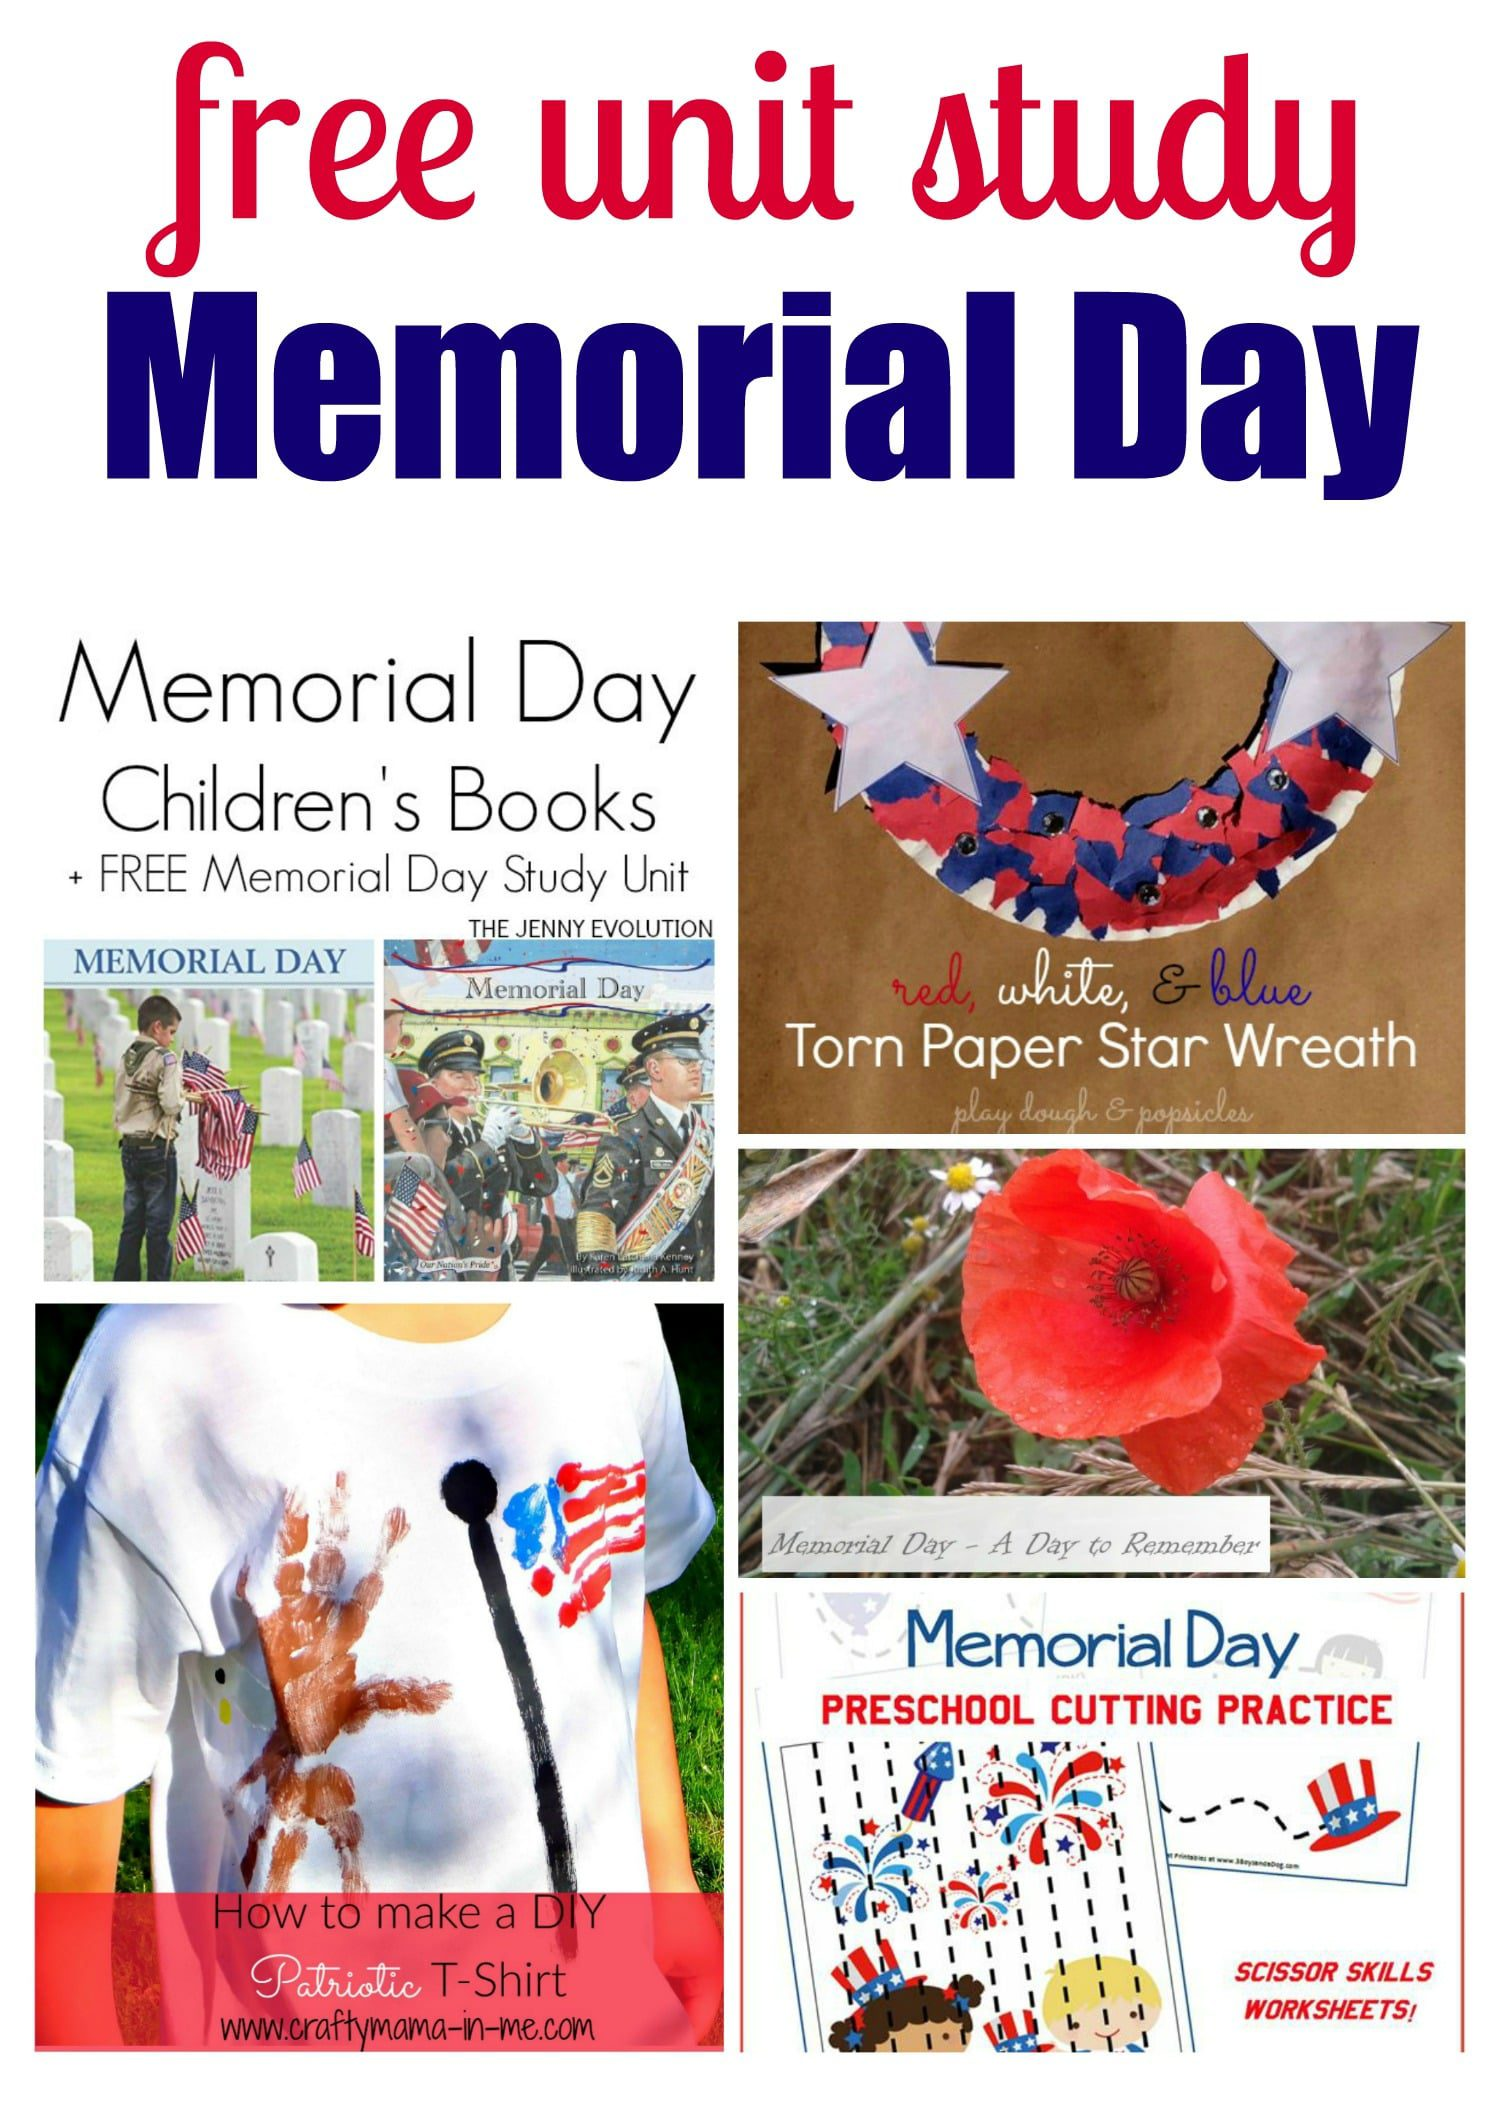 On Memorial Day we remember fallen military heroes. This Memorial Day penmanship worksheet will teach children about the true meaning of the holiday.